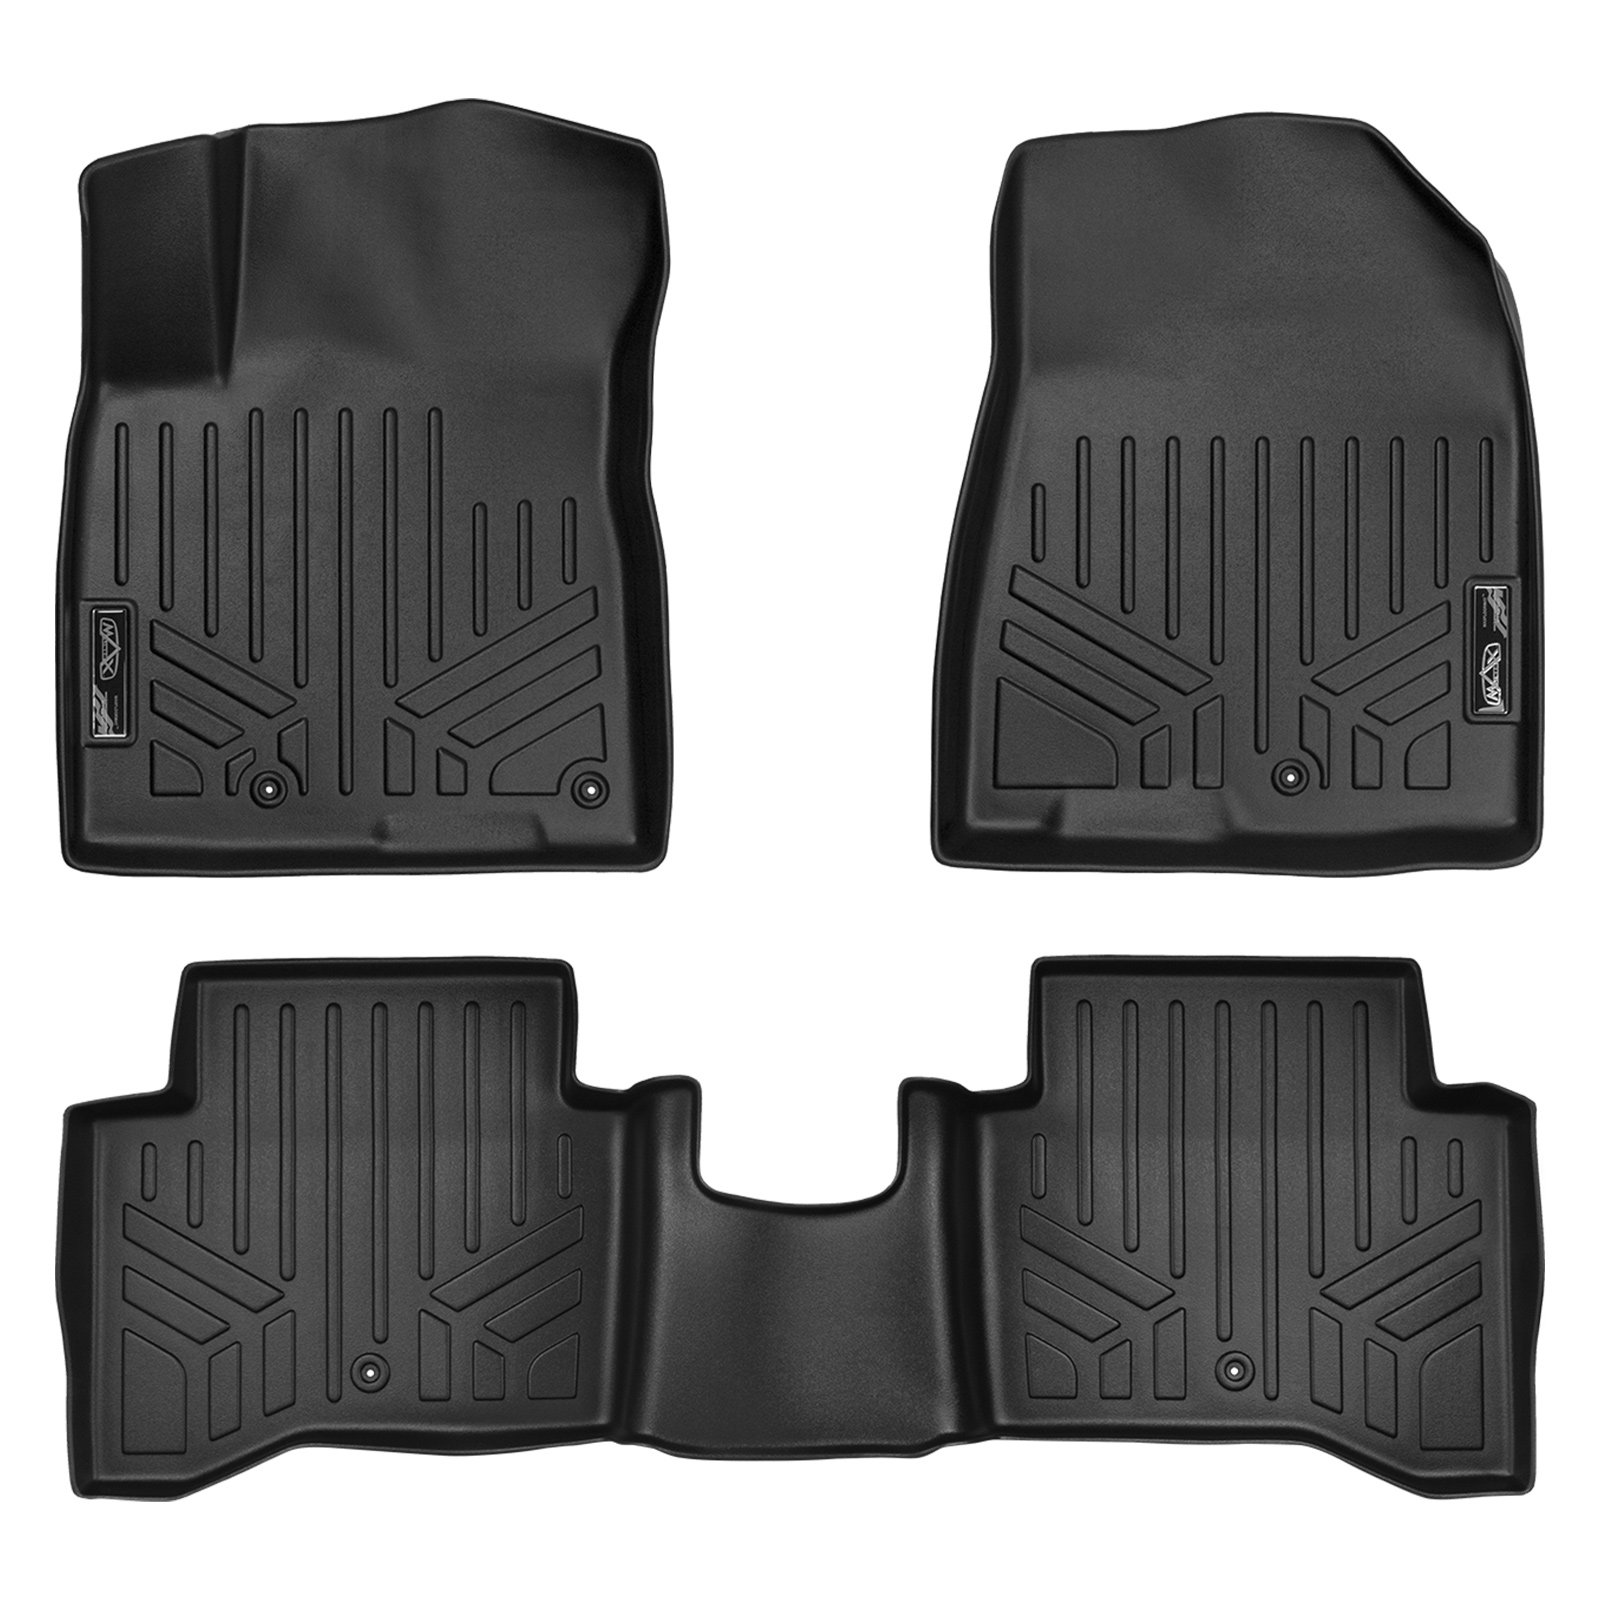 Red Non-Slip Anti-dust Rubber Mats 17 Pcs//Set YEE PIN Kia Seltos Door Gate Slot Mats Door Mats Fit for 2020 2021 Kia Seltos Center Console Liner Accessories